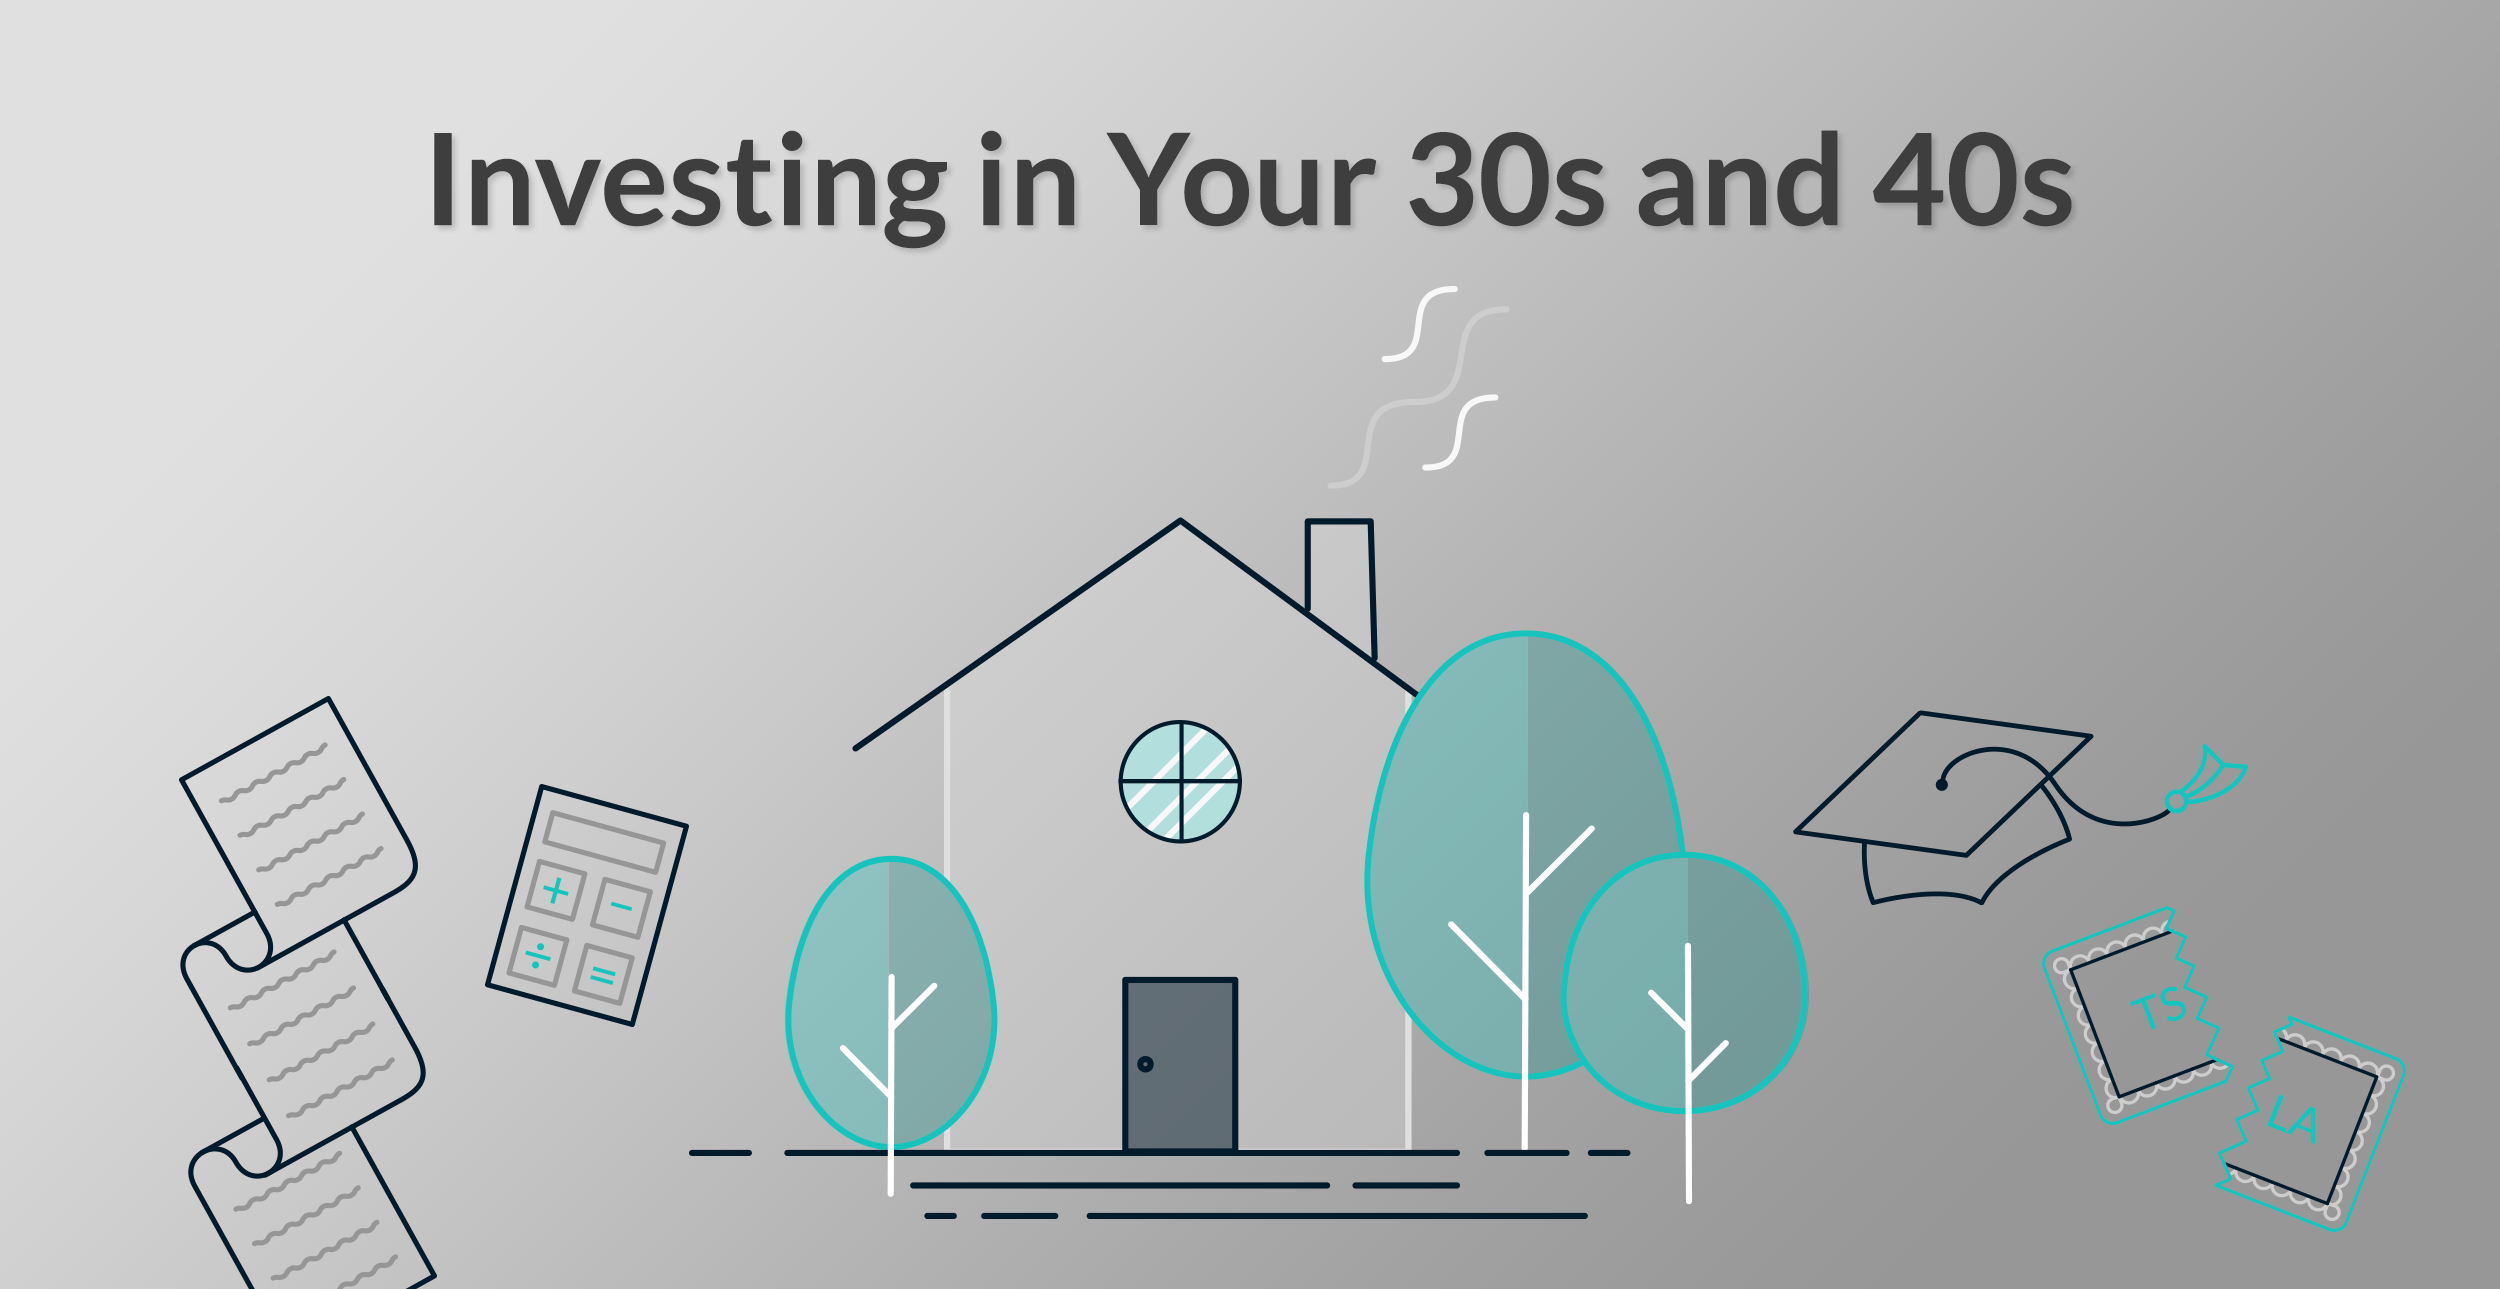 Investing in Your 30s and 40s